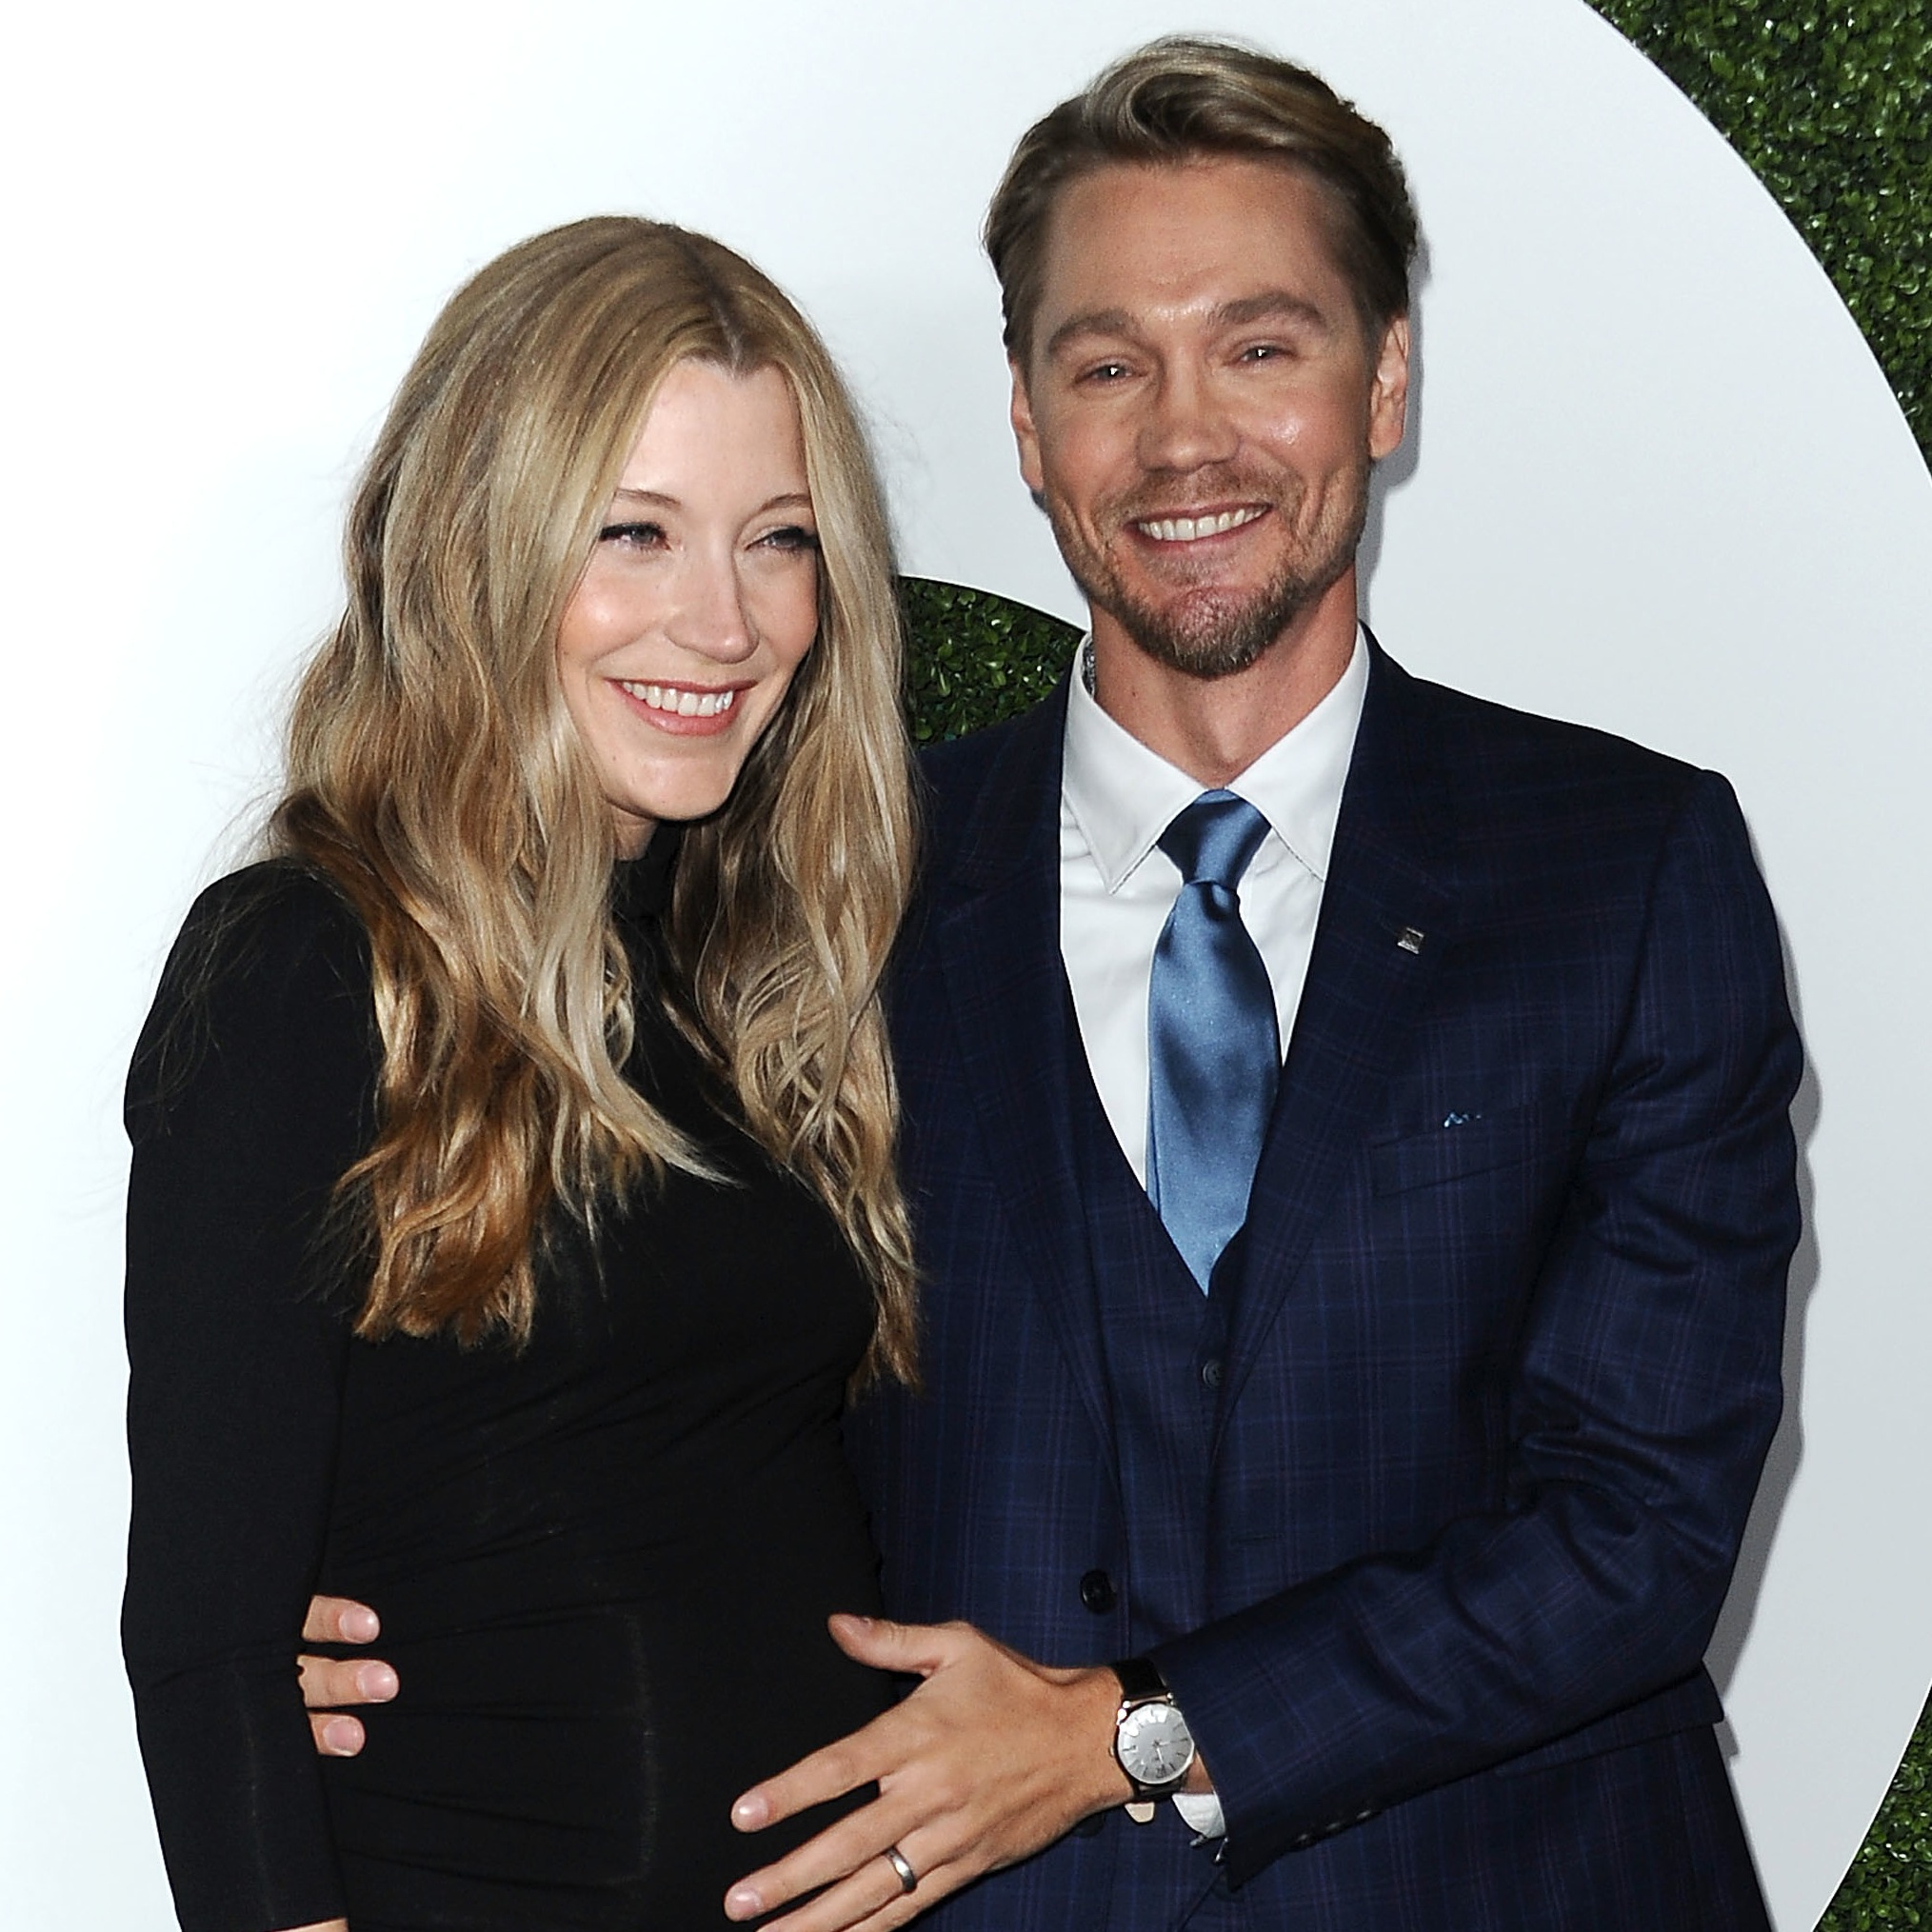 Chad michael murray who is he dating now